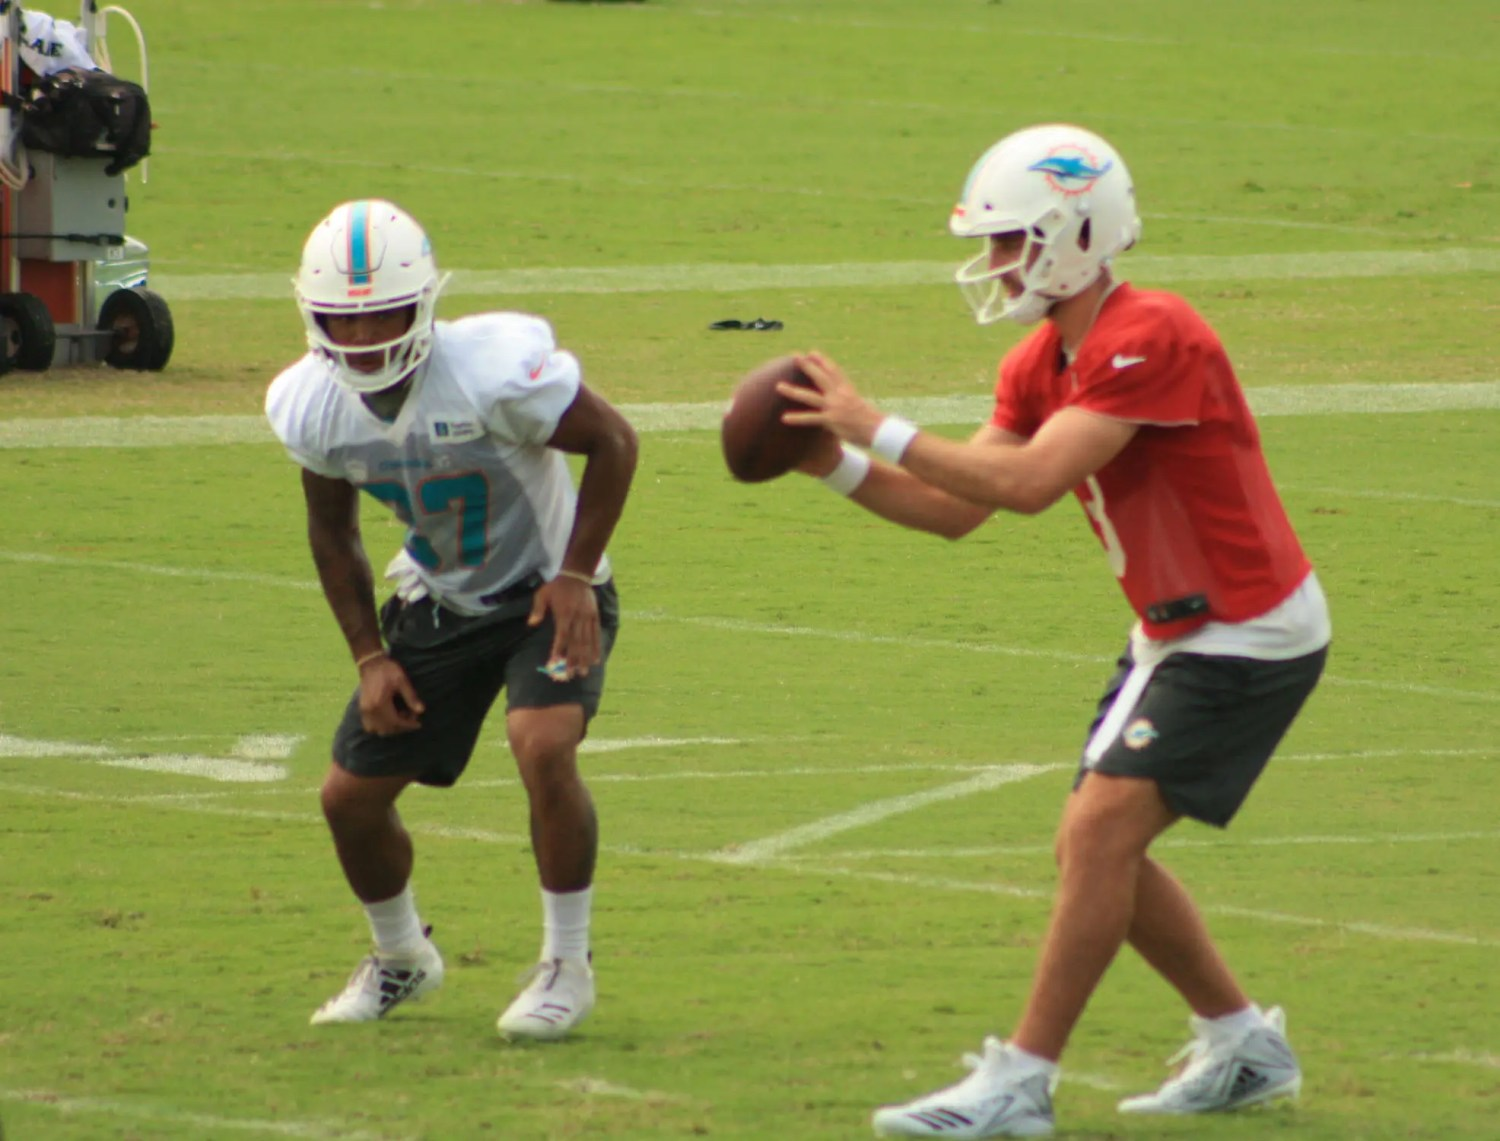 Josh Rosen has shown improvement since a rocky start to training camp with the Dolphins. (Craig Davis/Five Reasons Sports)